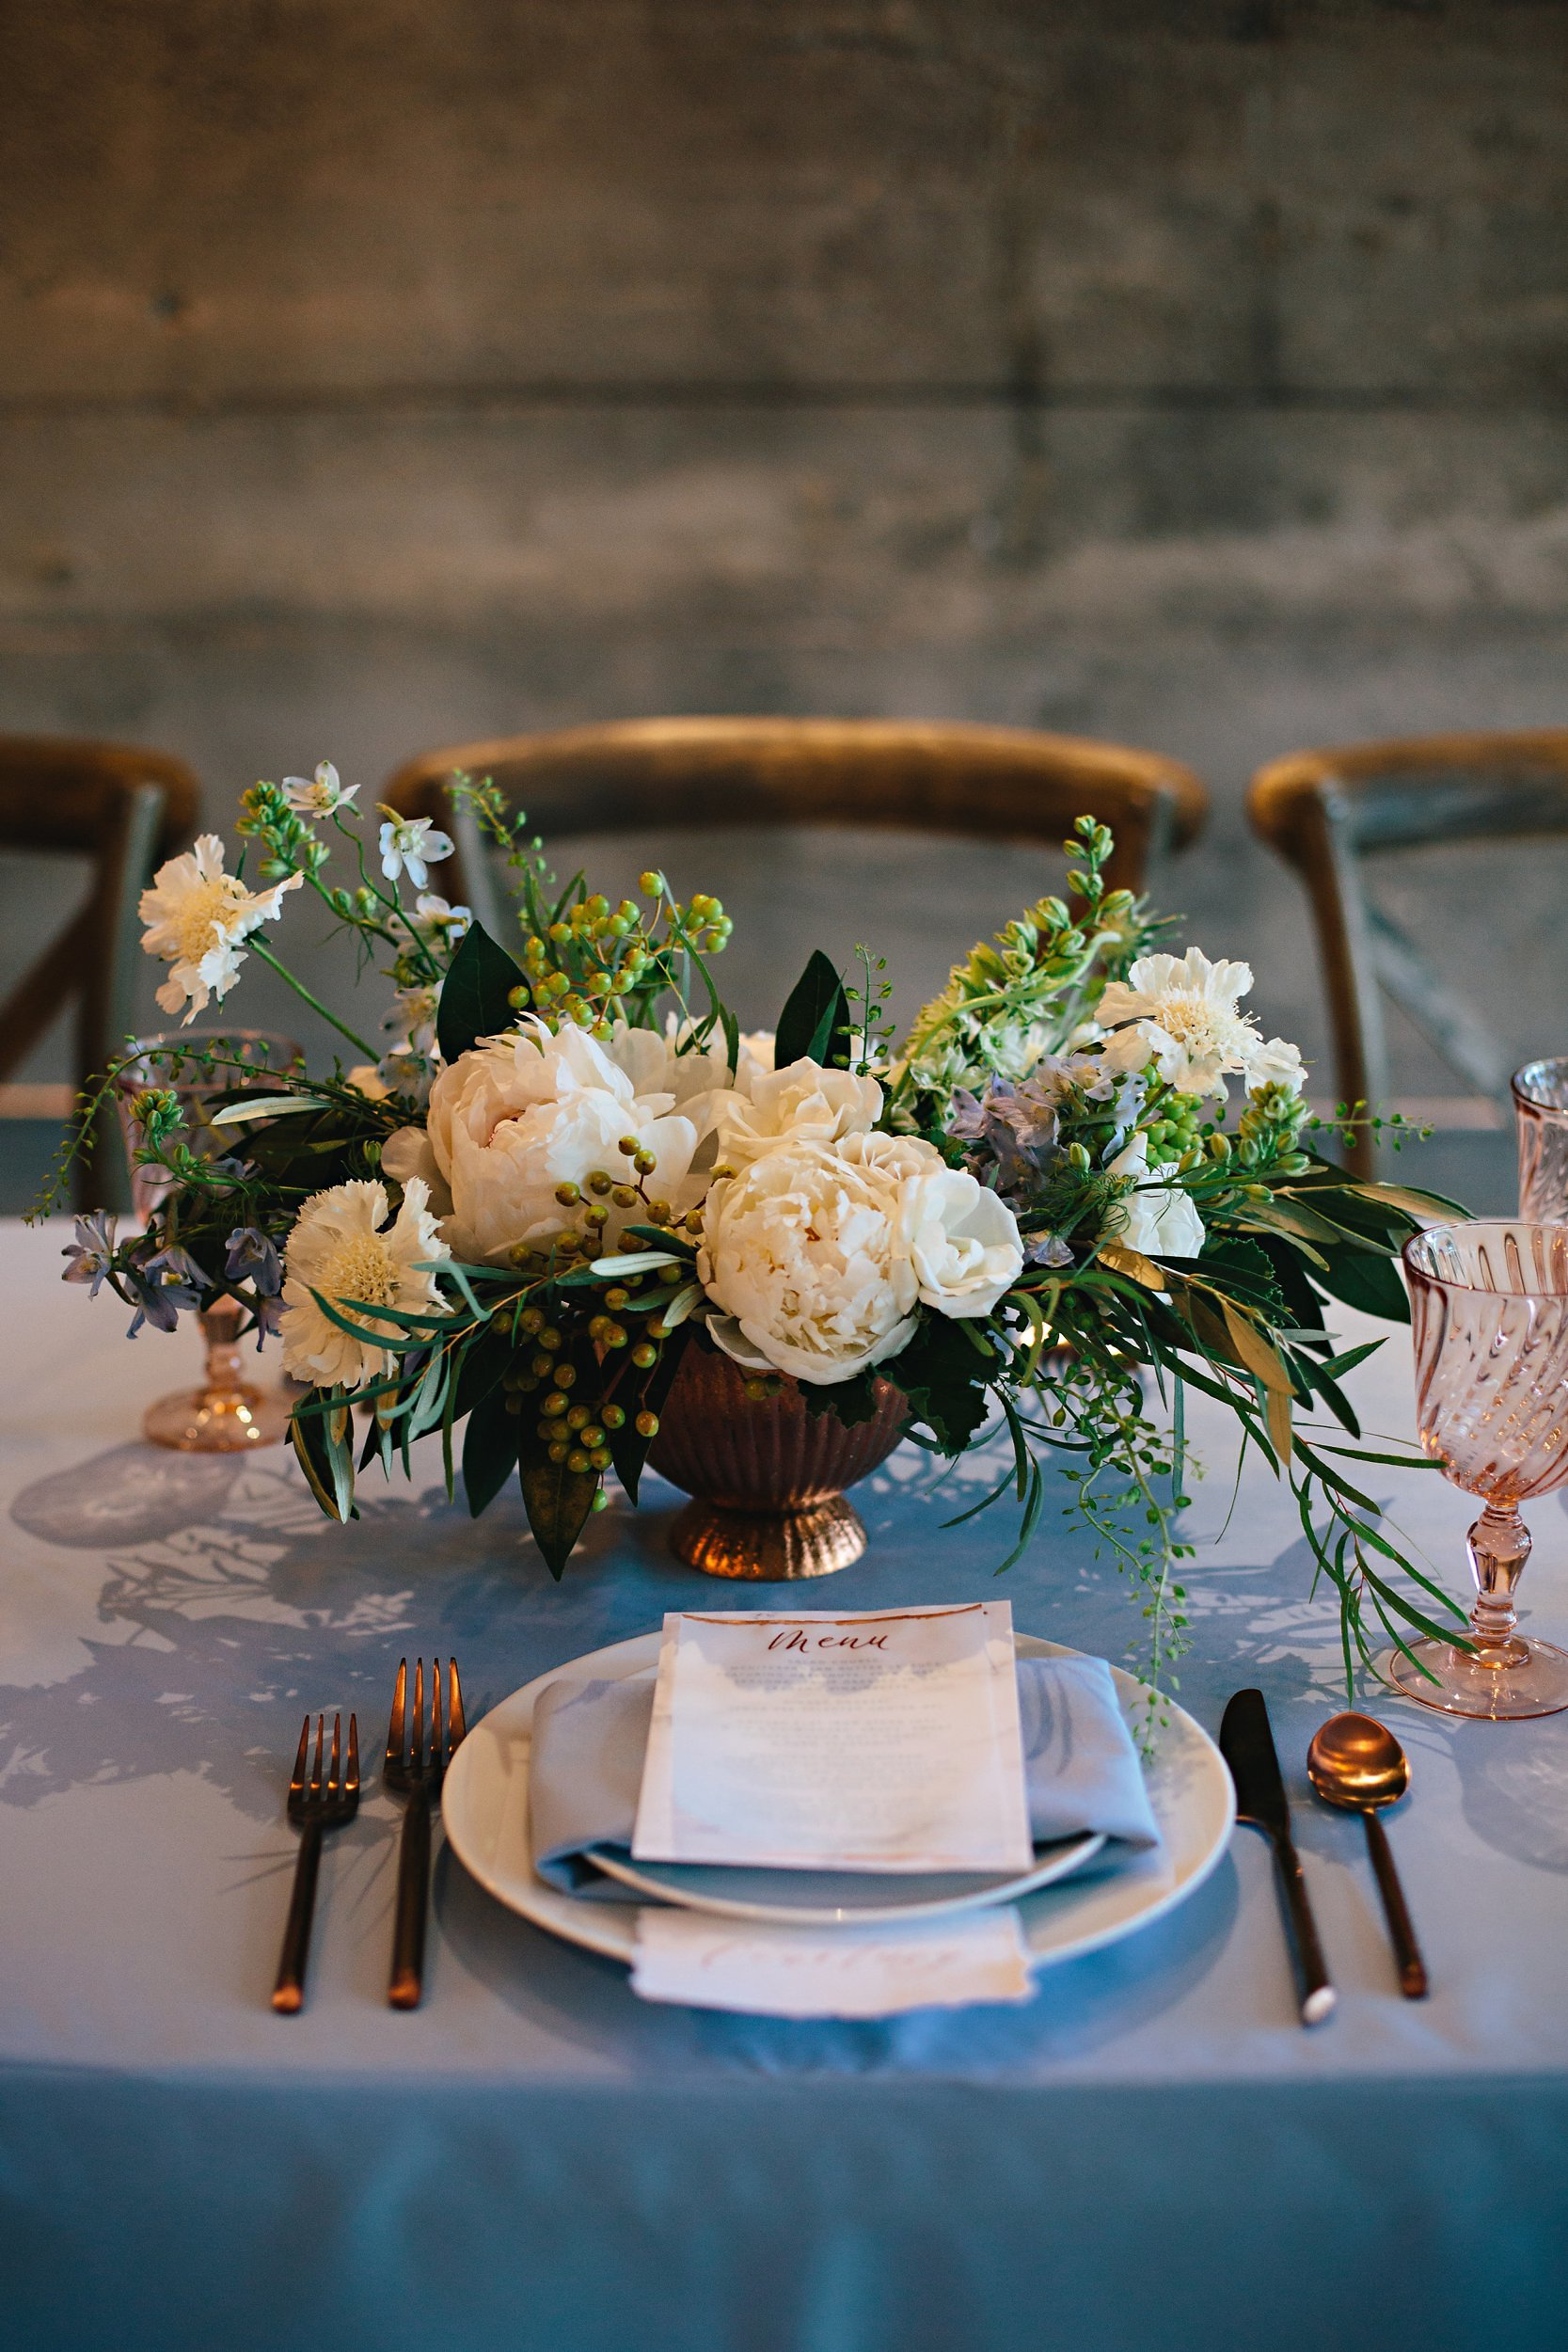 Copy of Summer Garden Wedding: Tabletop details: Place setting